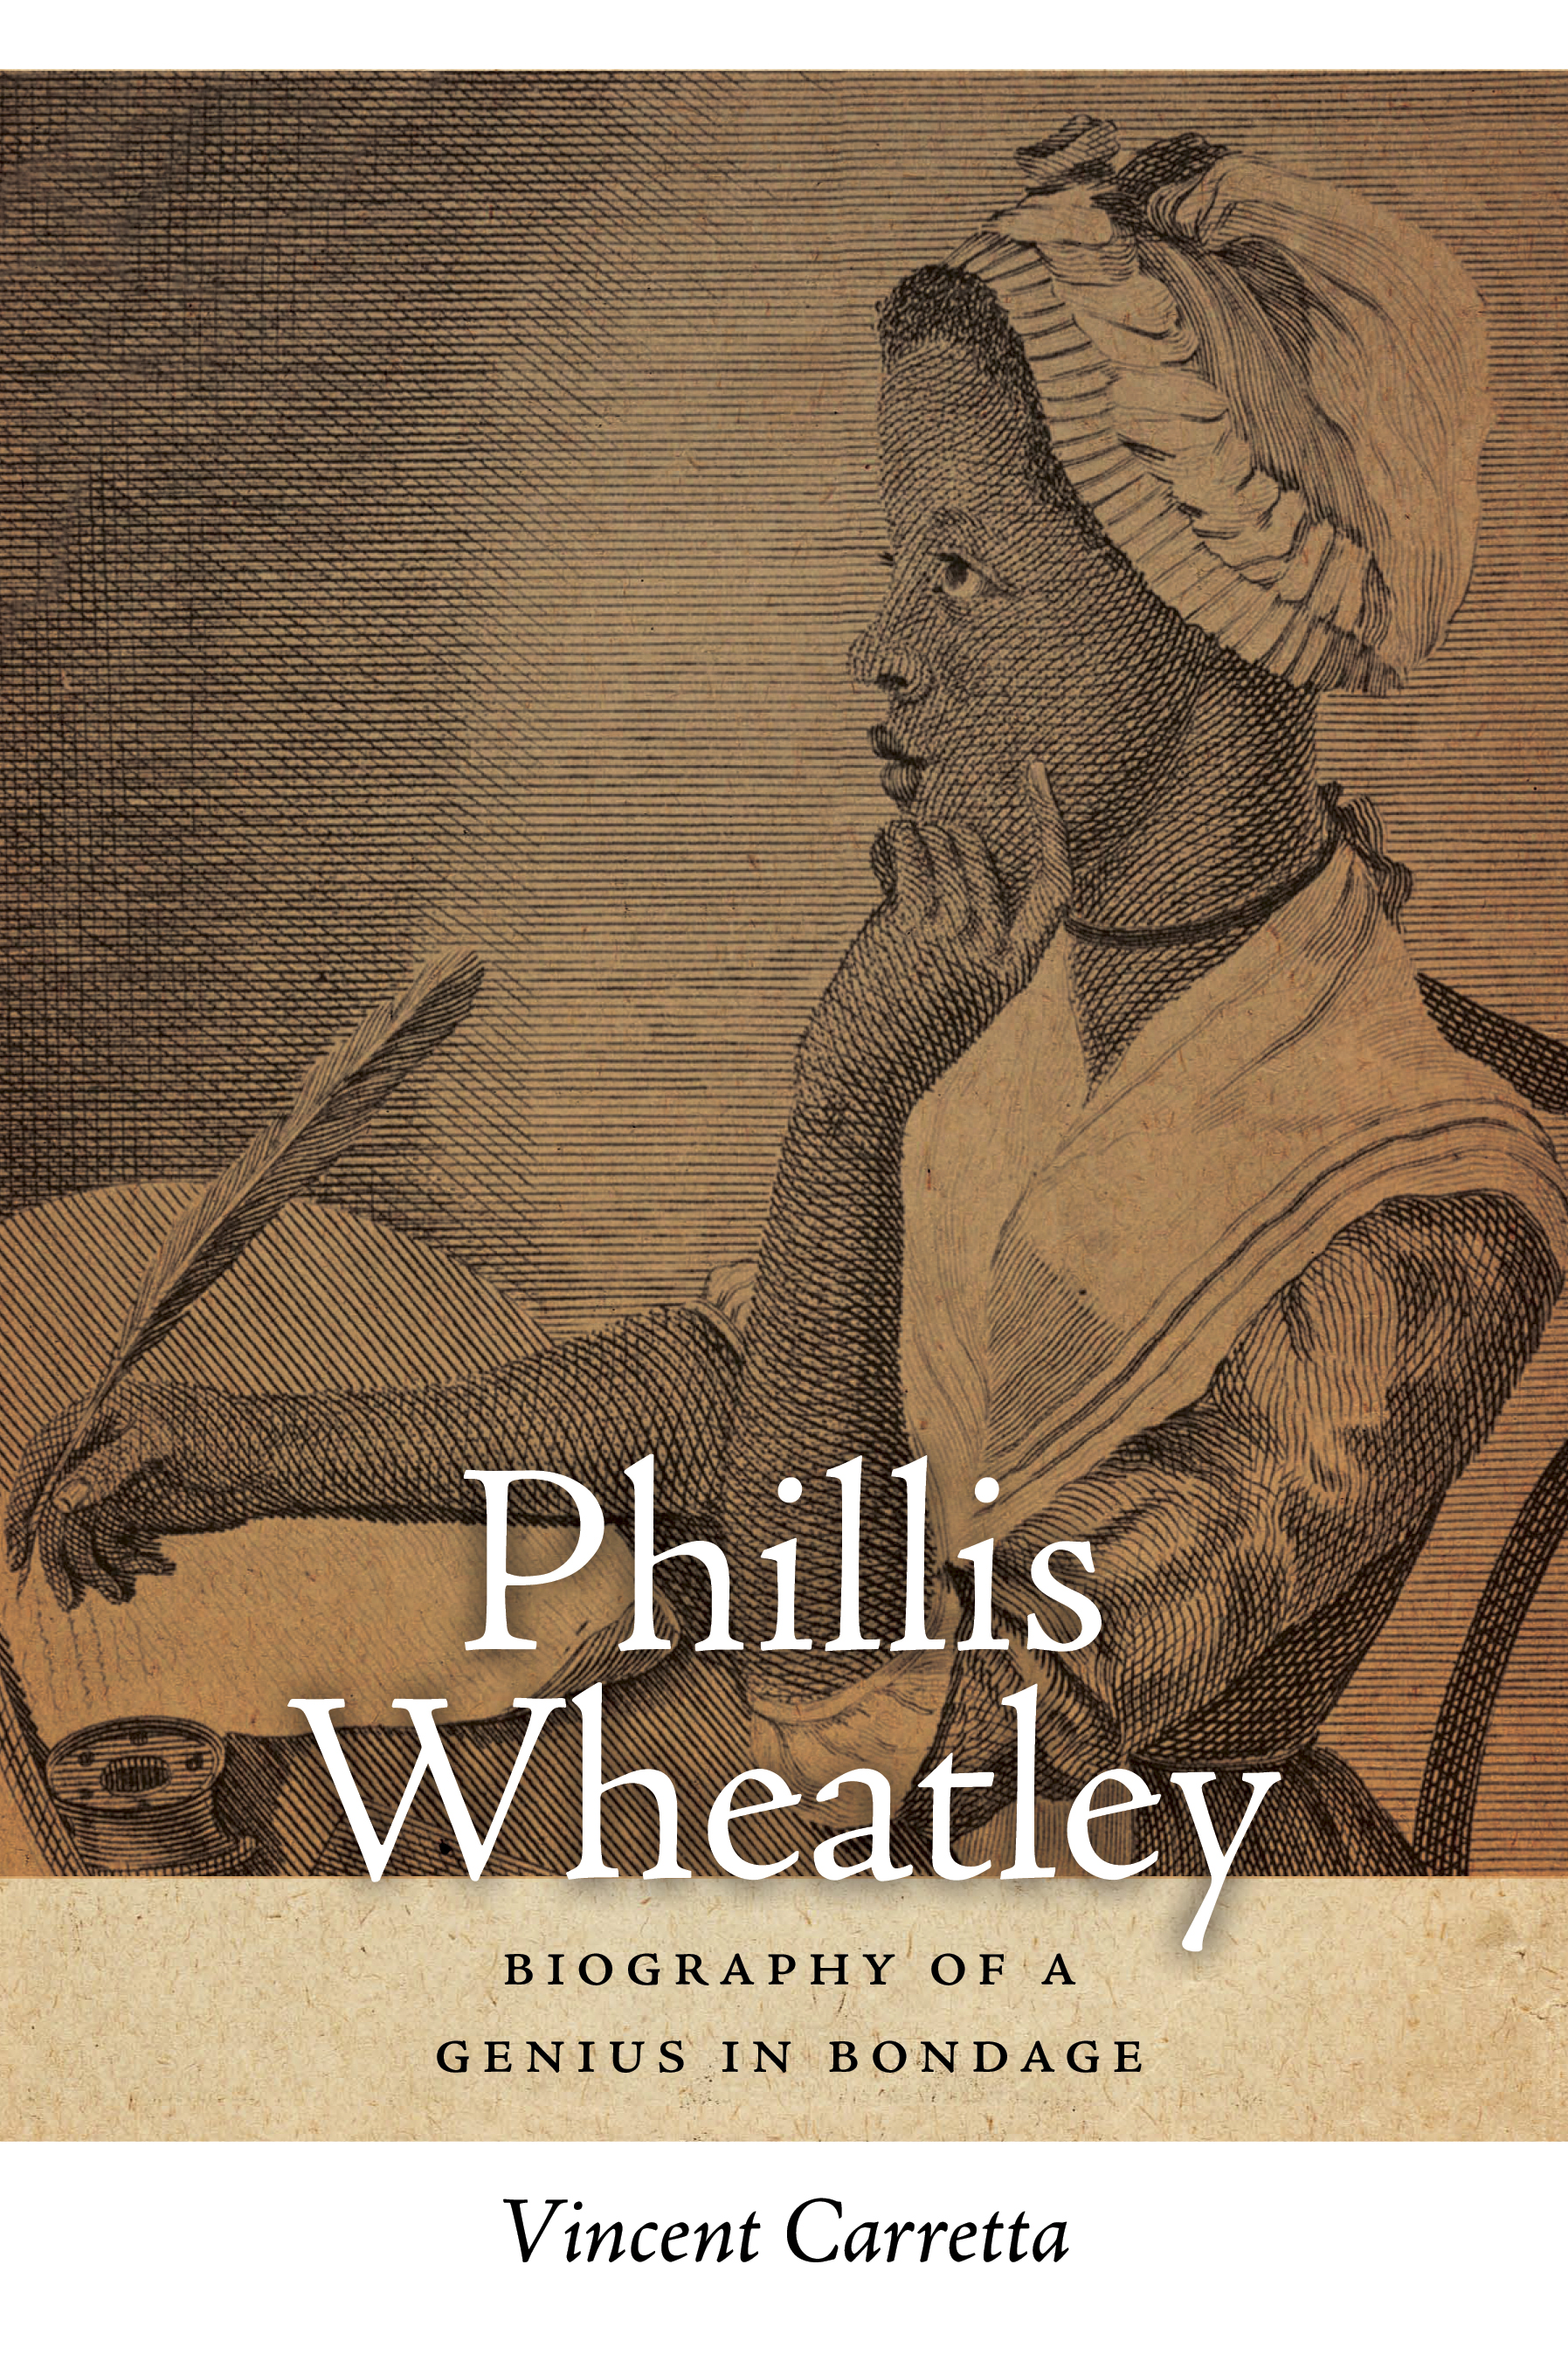 an introduction to the phillis wheatley and her writing techniques Phillis wheatley was abducted from her parents and her home in west africa when she was around seven years old, she was named for the slave ship the phillis that delivered her into slavery i was surprised to learn phillis wheatley viewed slavery as an opportunity rather than a cruel and dehumanizing system.